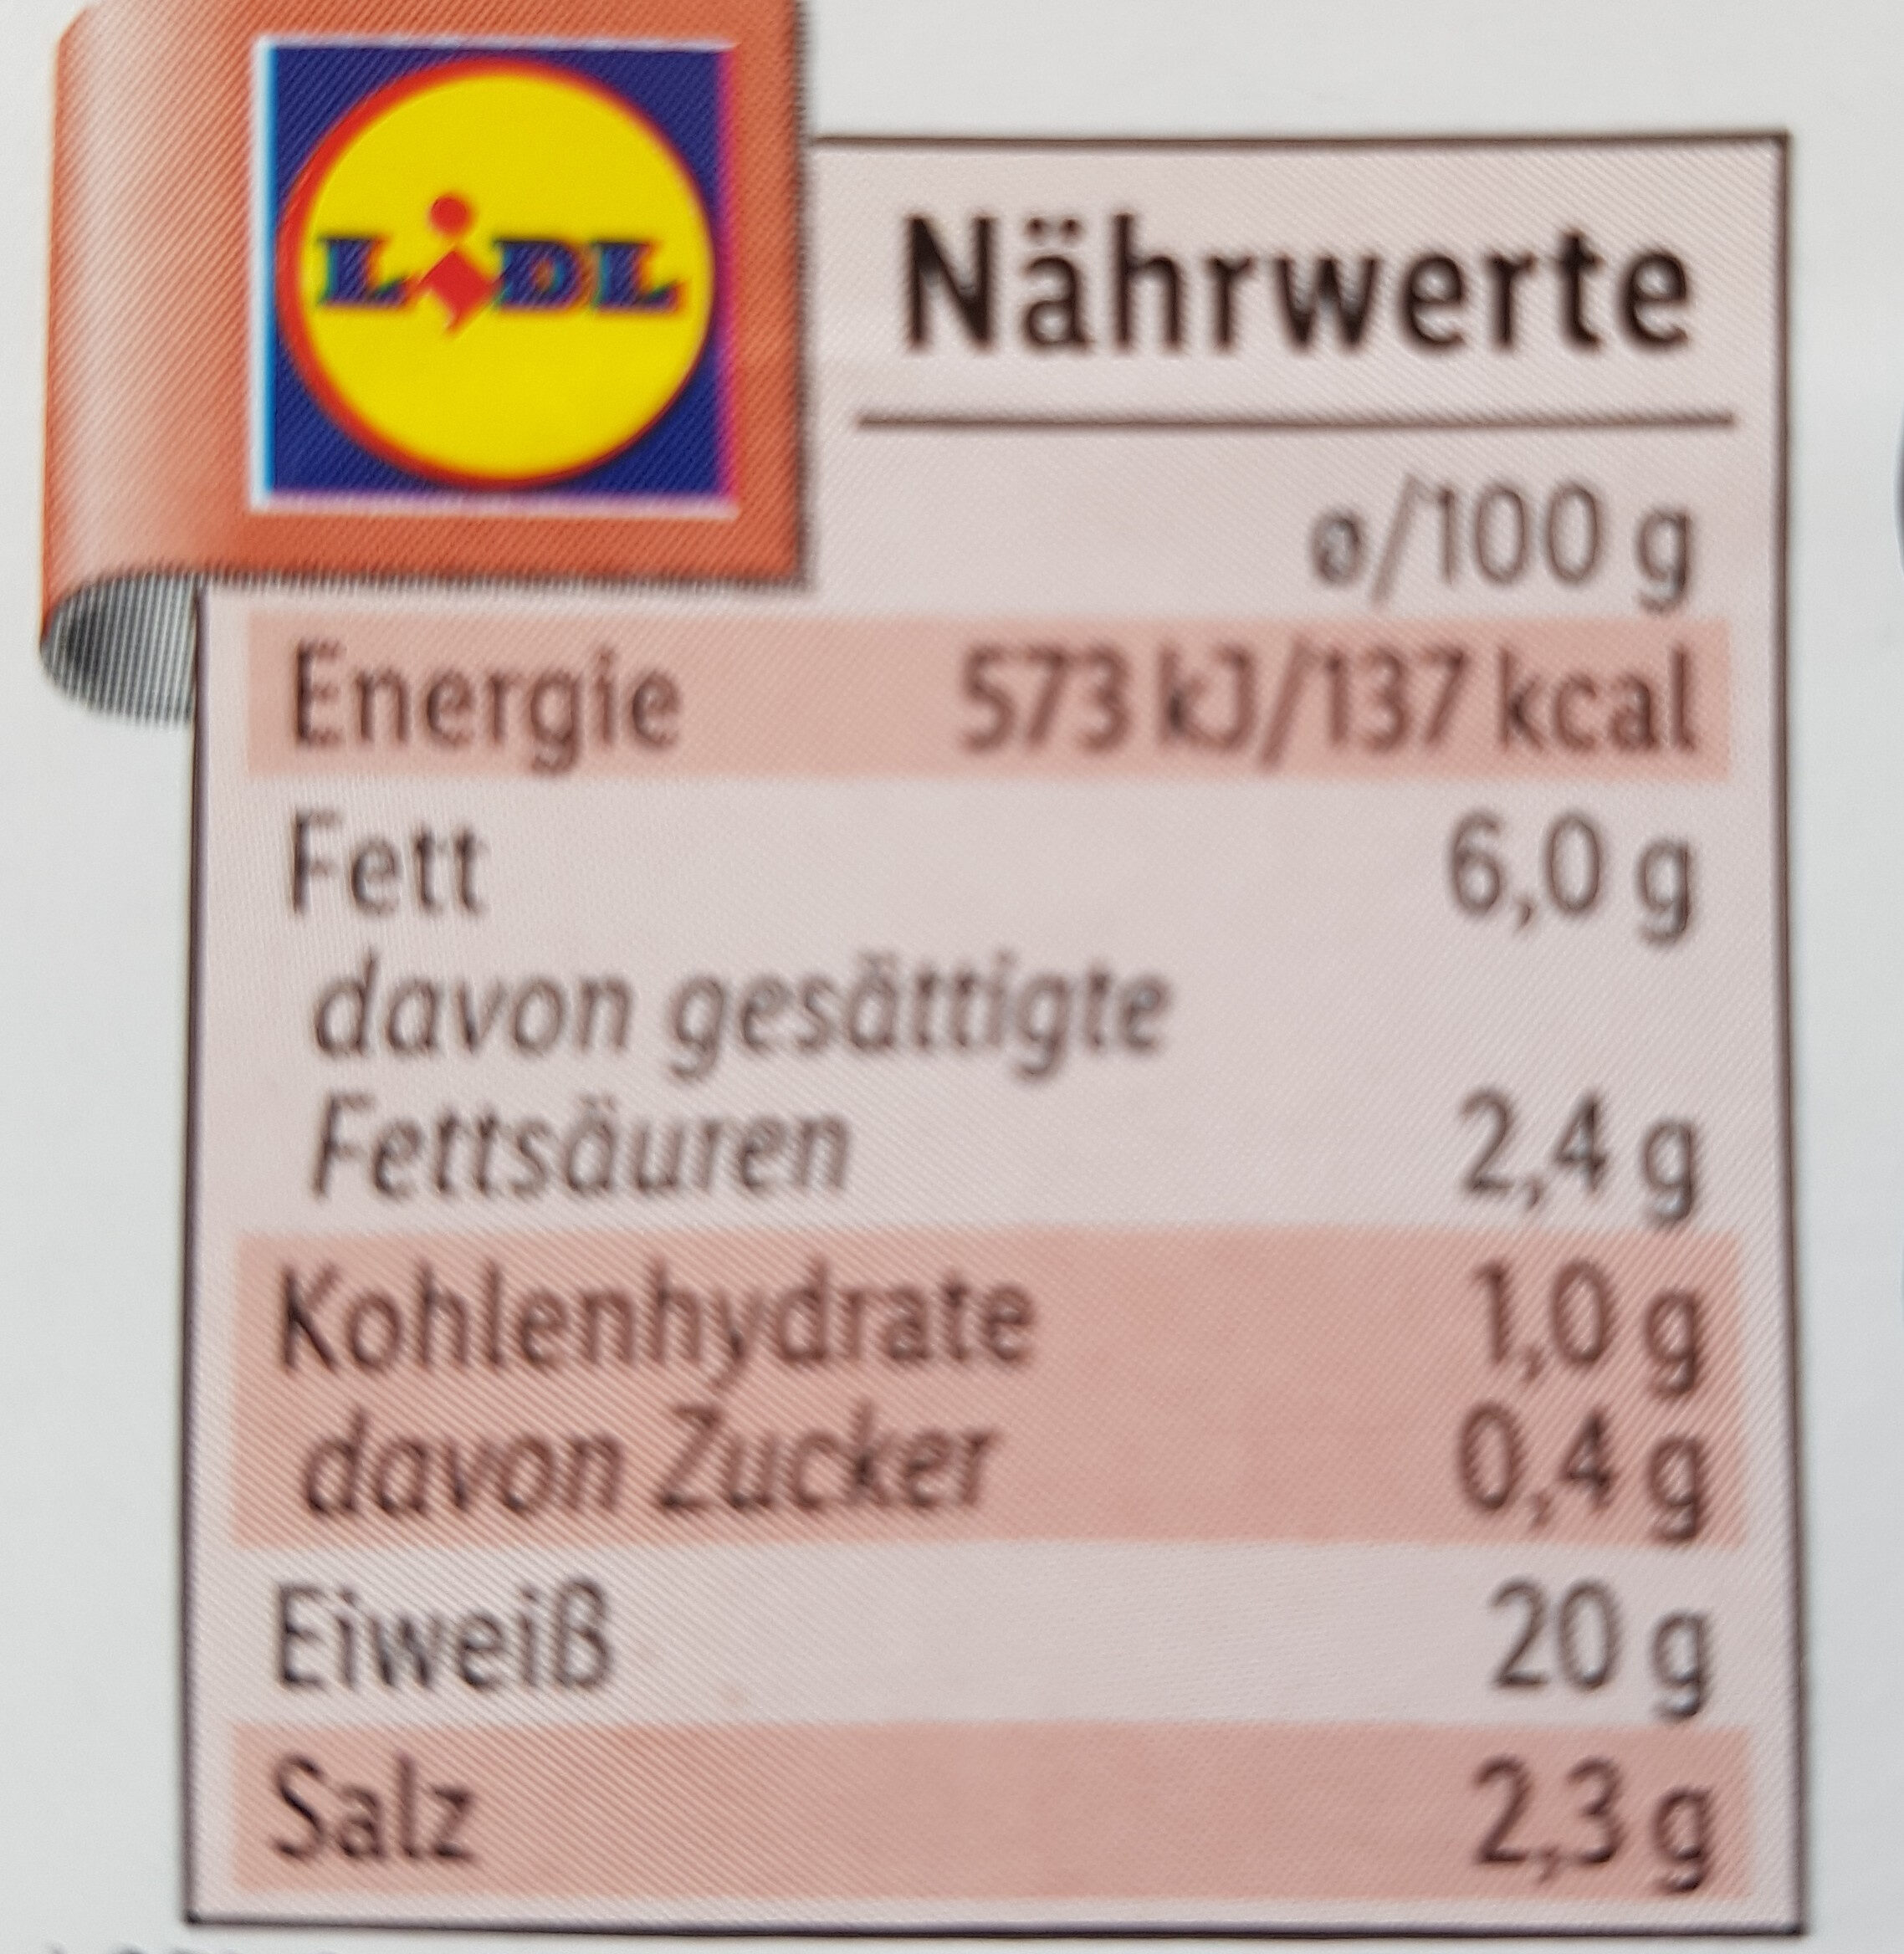 Delikatess Krusten-Schinkenbraten - Nutrition facts - de